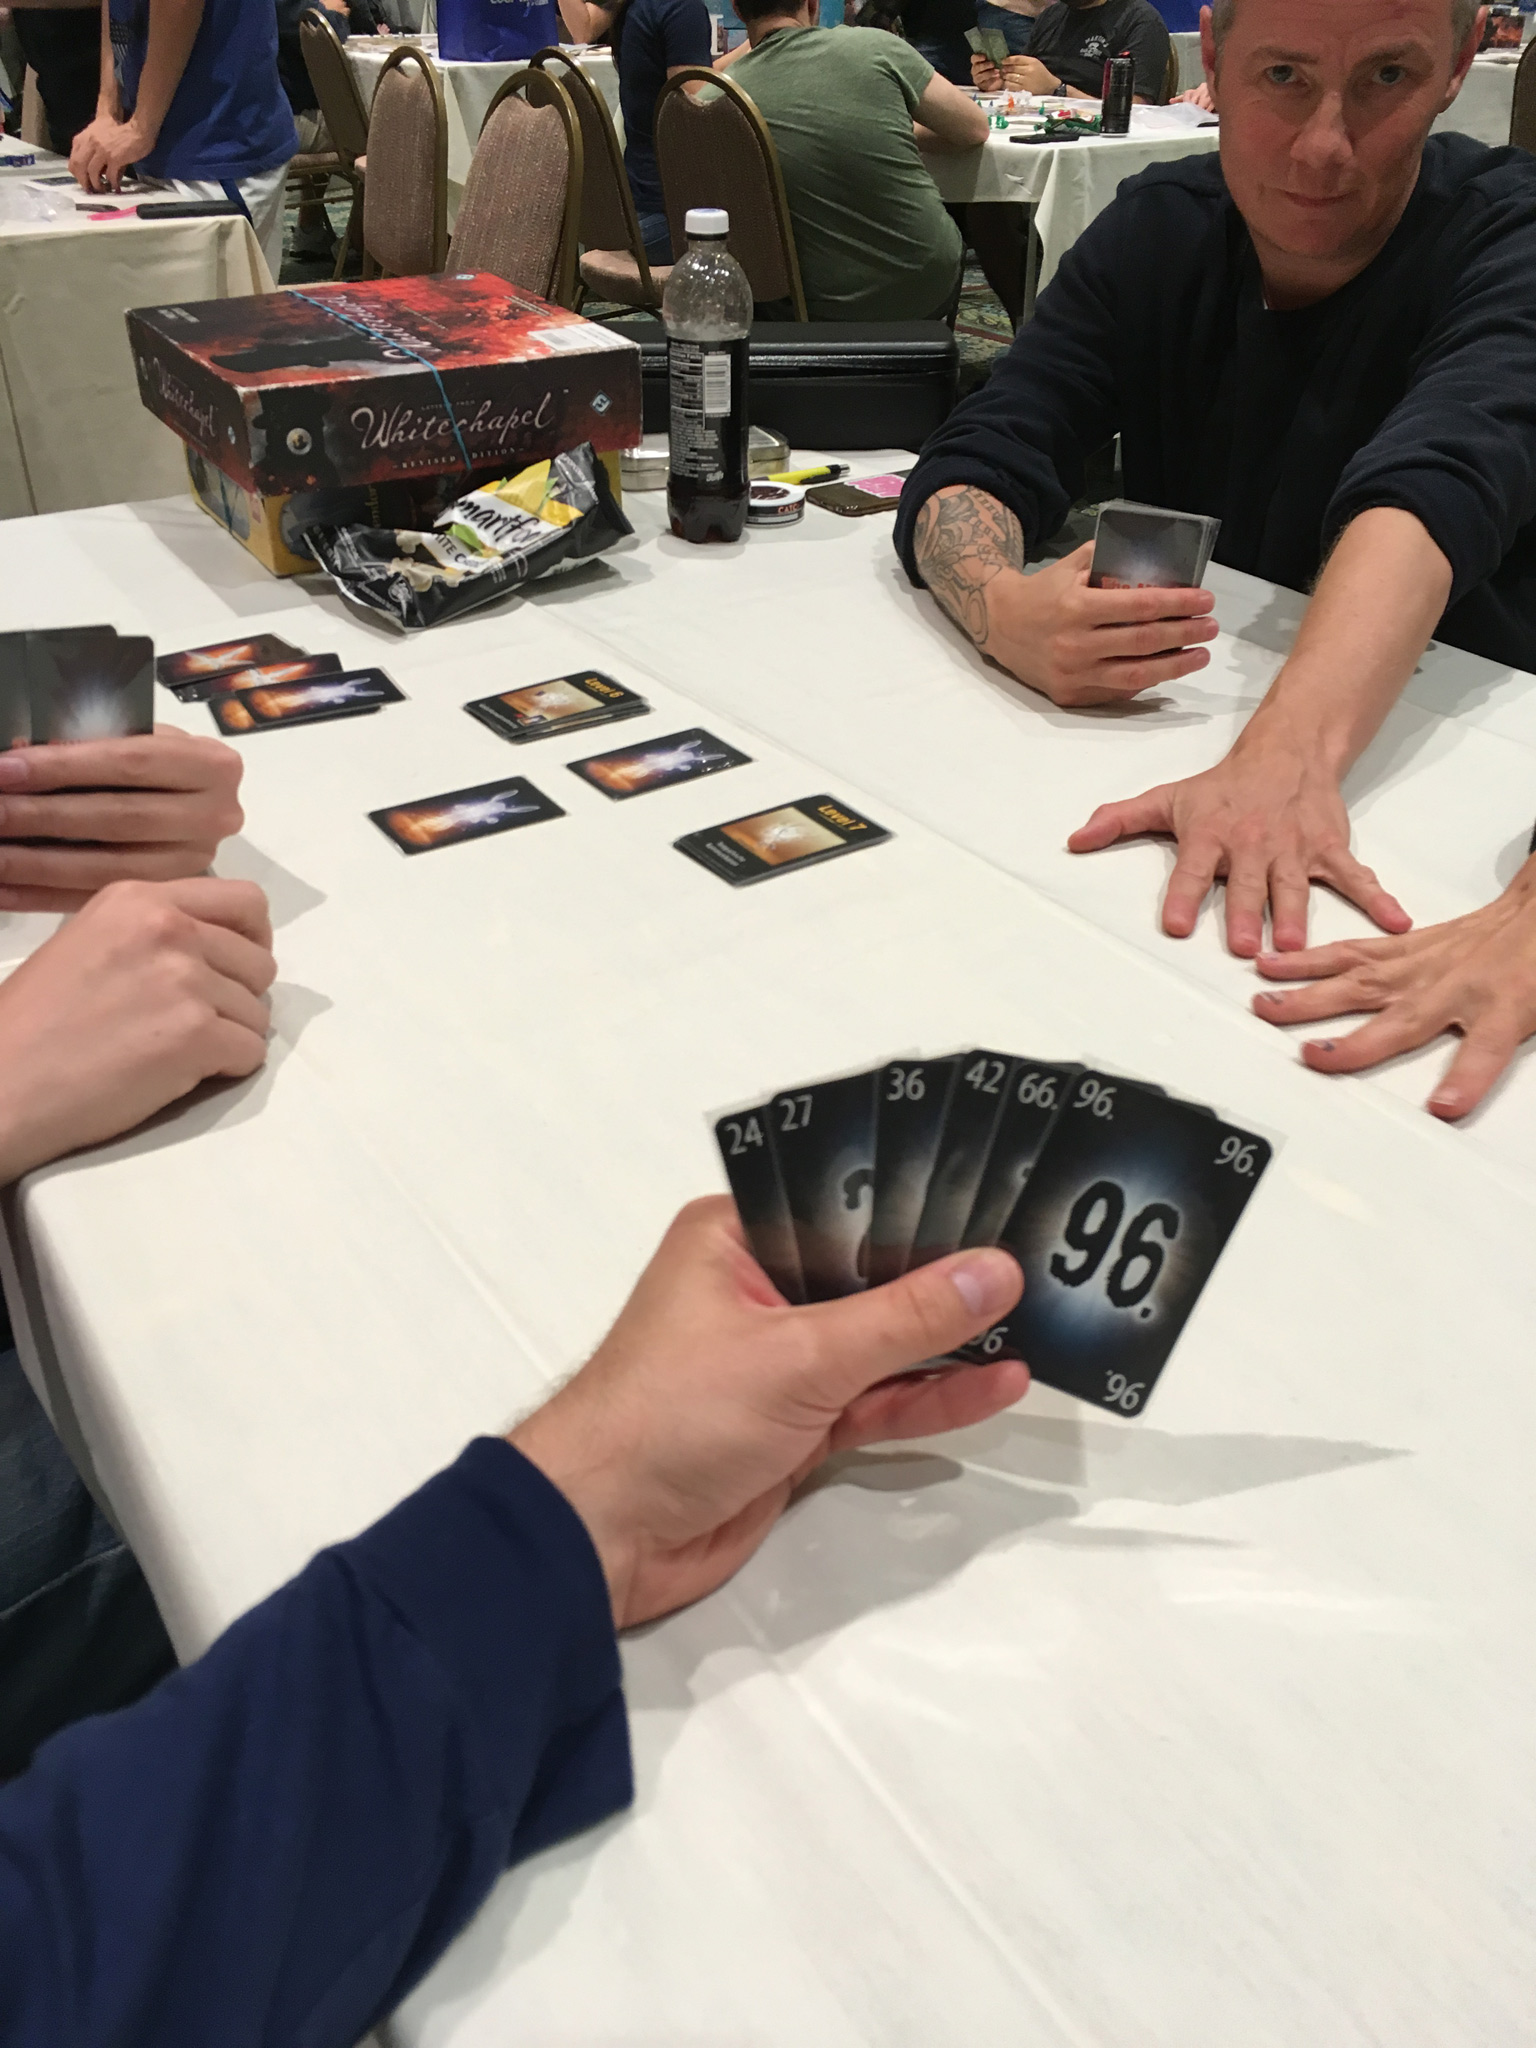 The Mind tabletop game